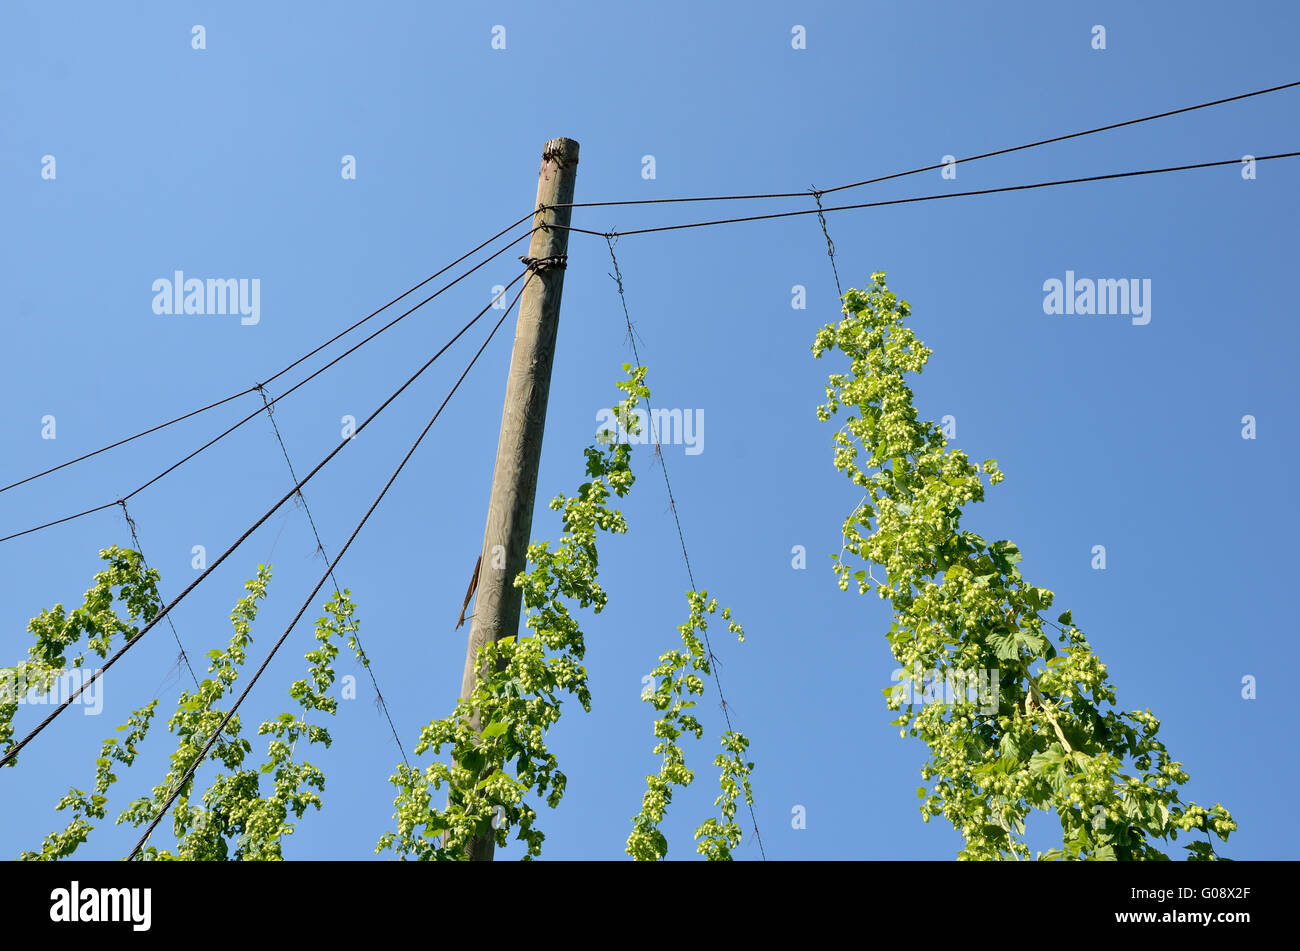 Hops plants on rank wires Stock Photo, Royalty Free Image ...